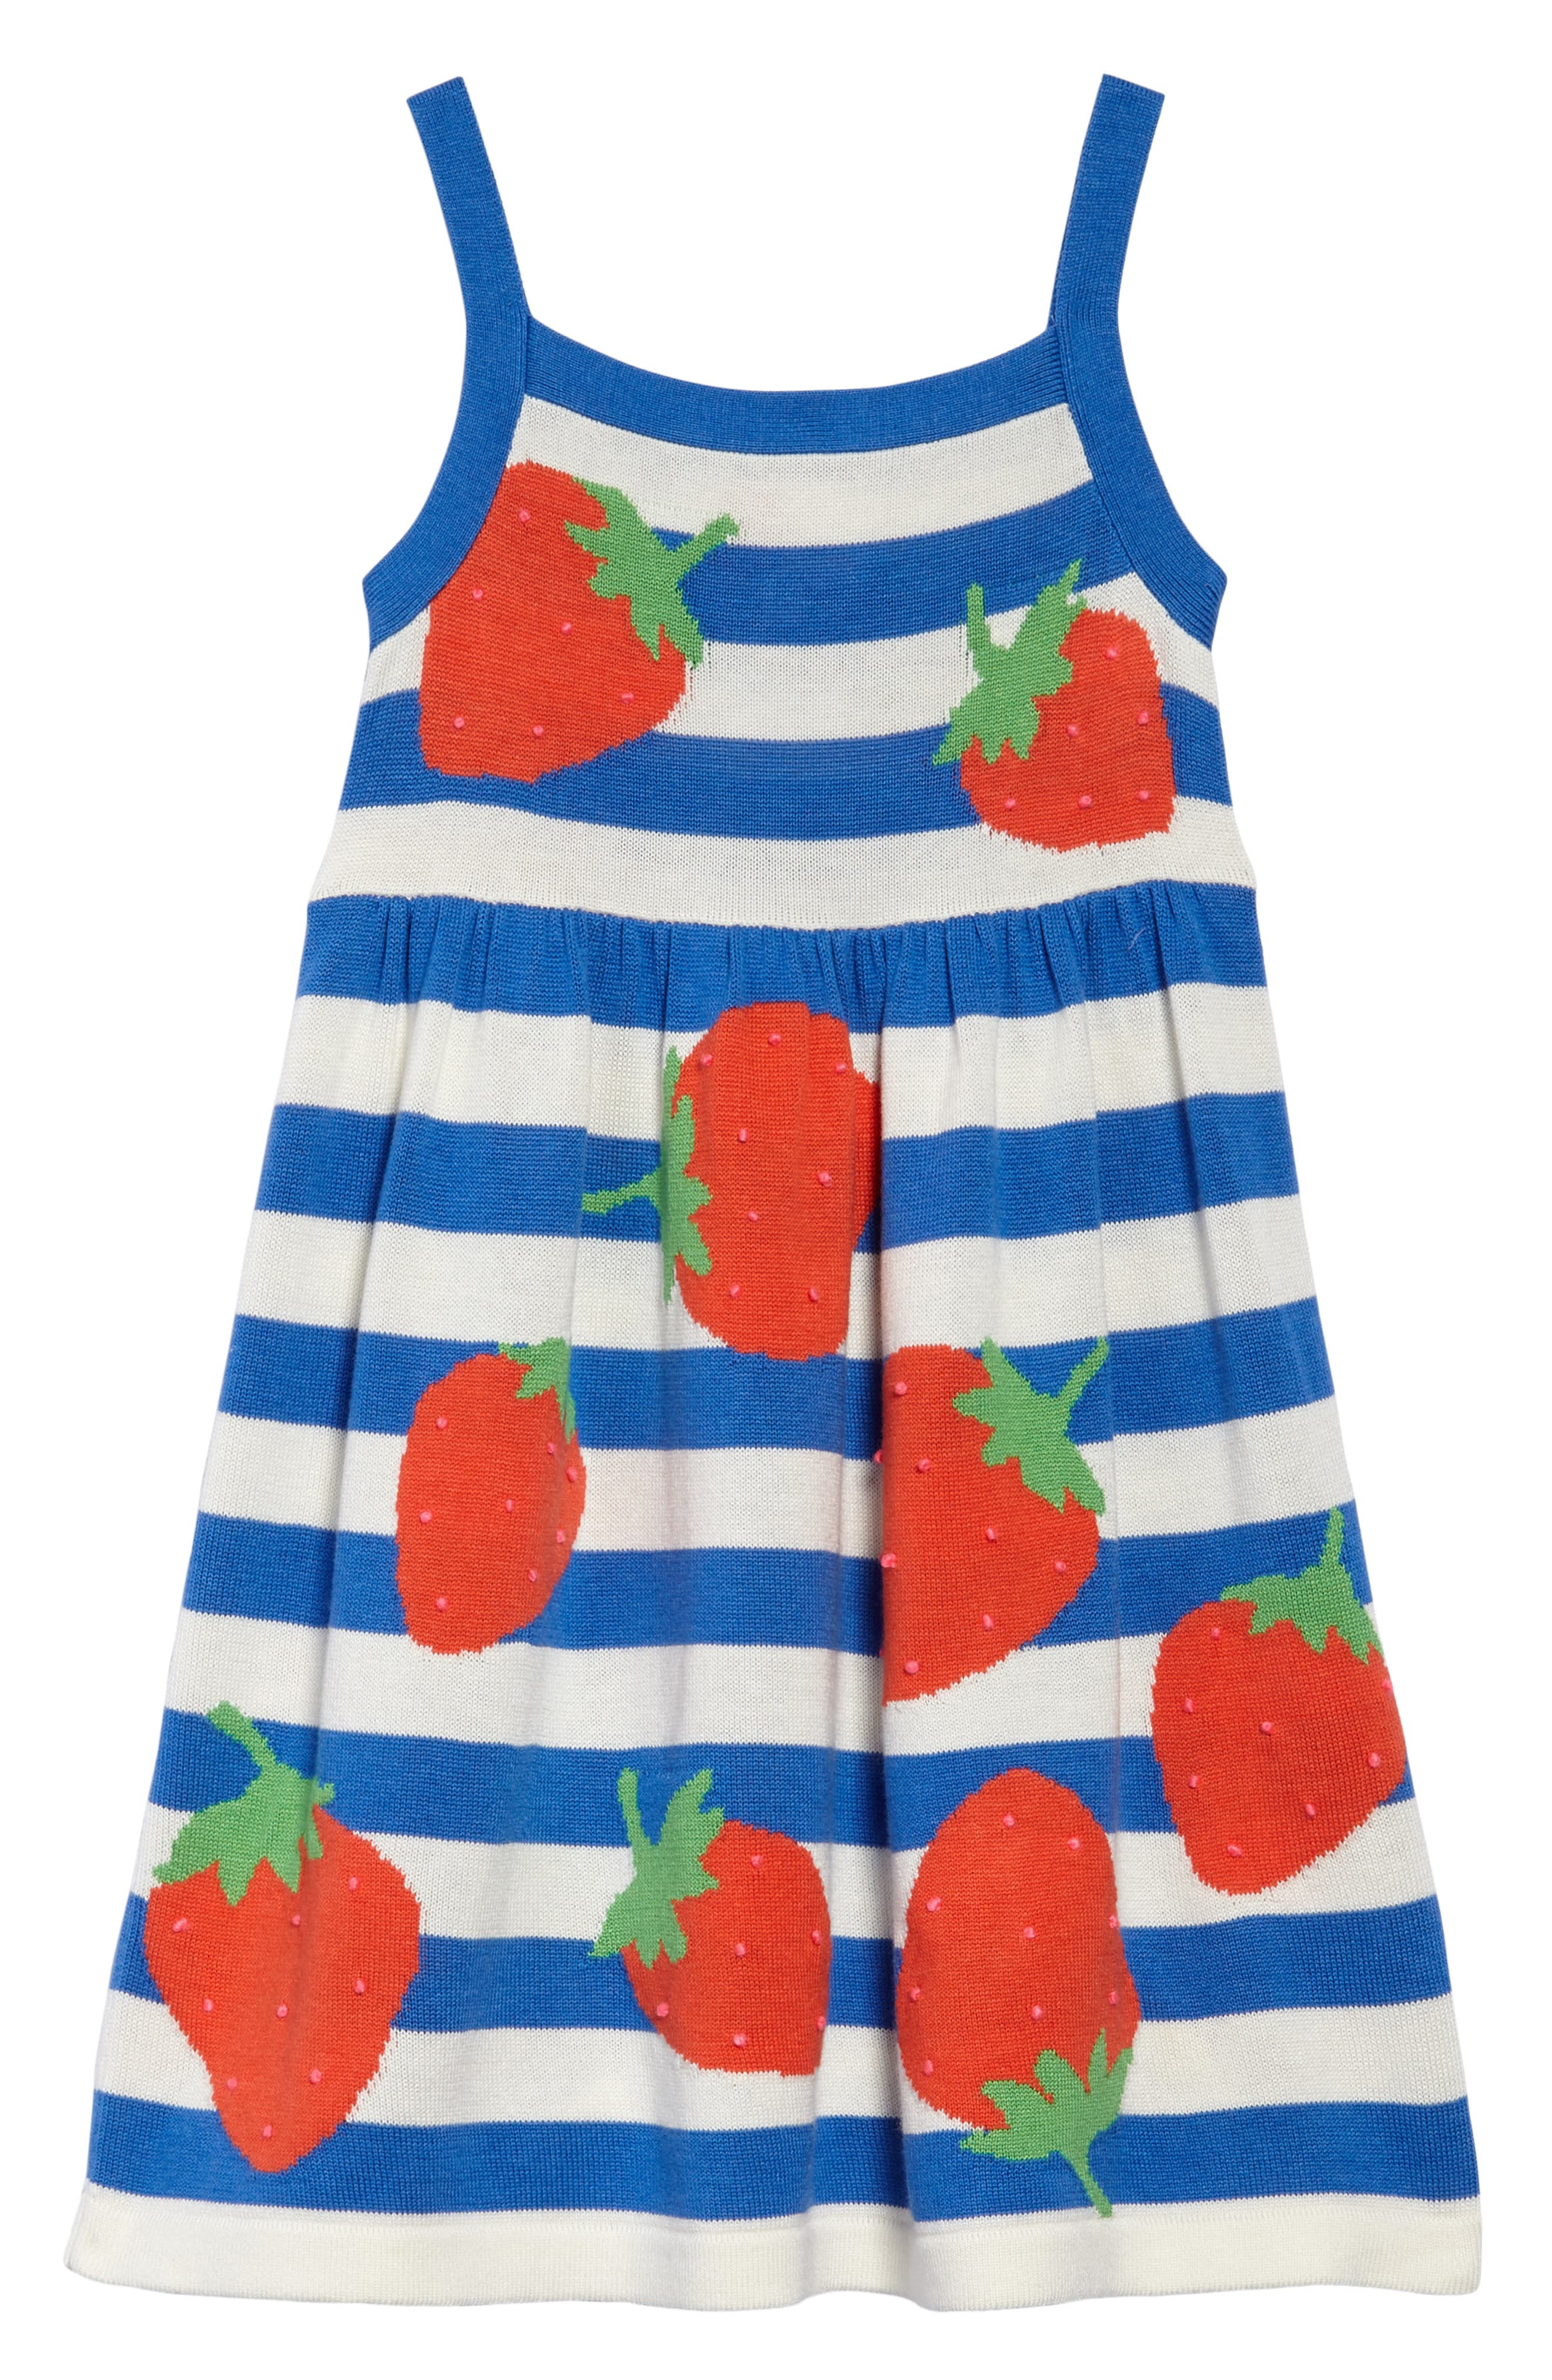 Fruity Summer Dress,                             Main thumbnail 1, color,                             424